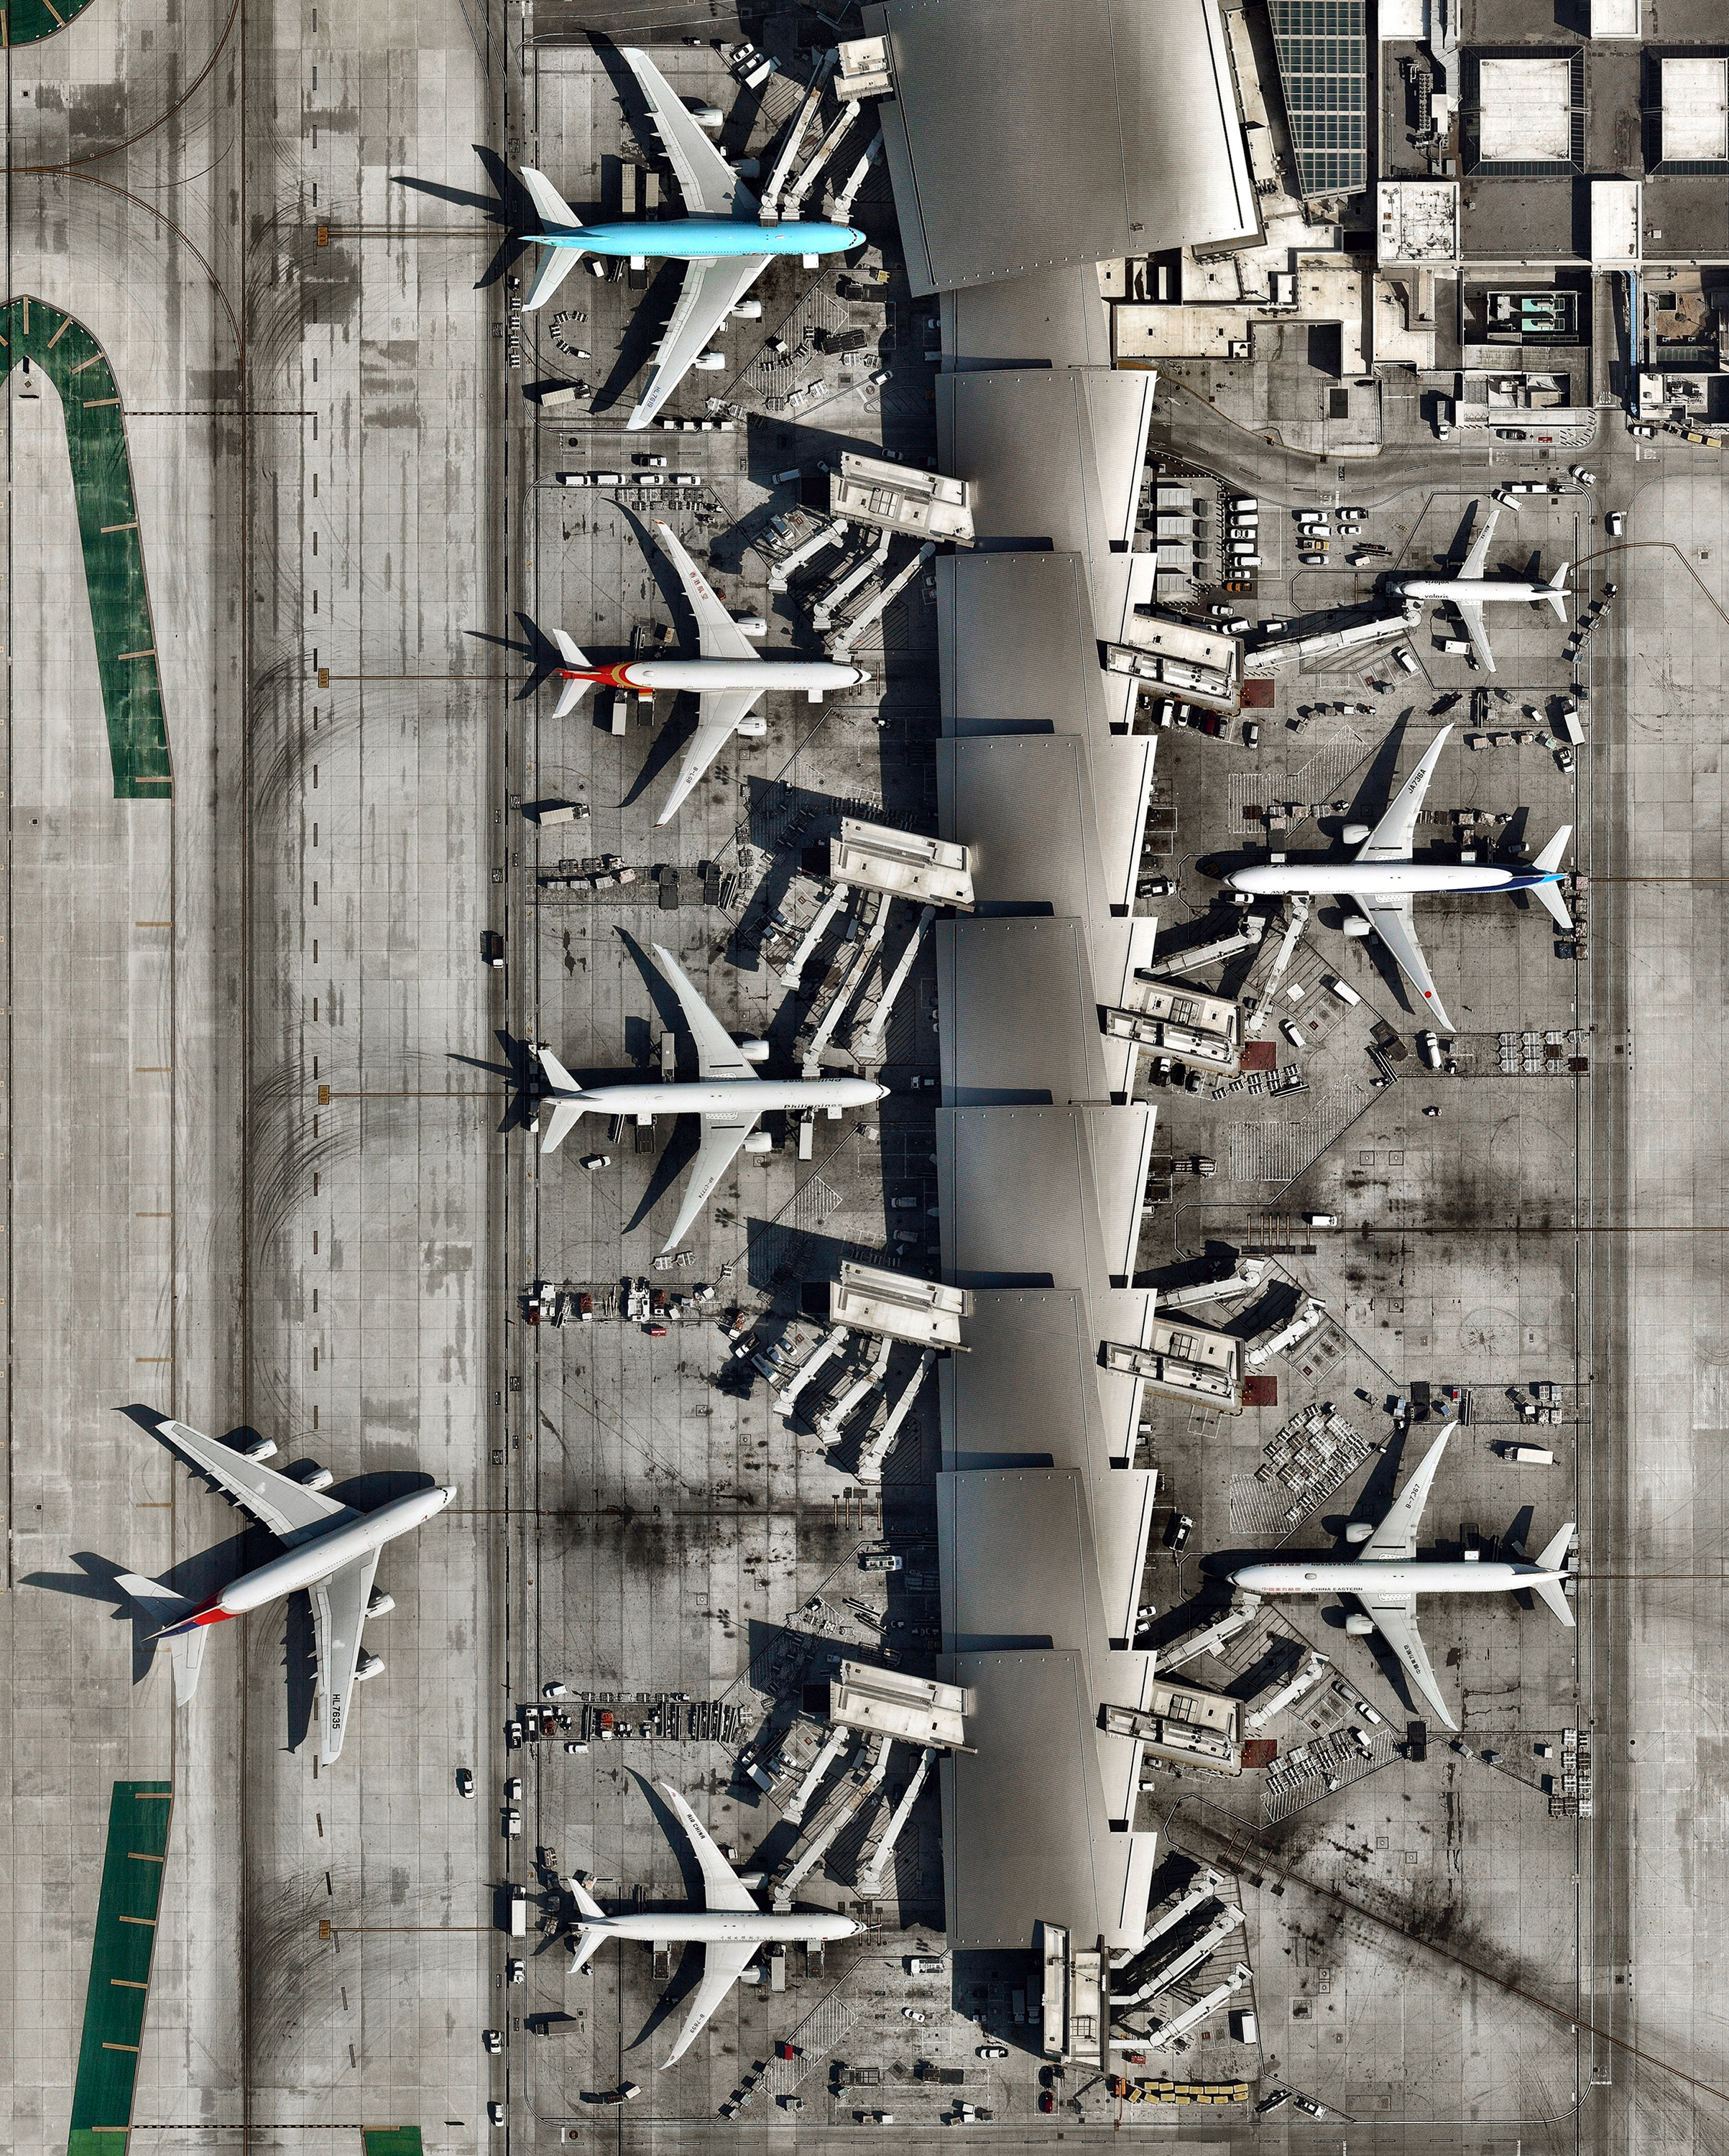 """The Tom Bradley International Terminal, sometimes called """"Terminal B,"""" is one of nine passenger terminals at the Los Angeles International Airport (LAX) in Los Angeles, California. This terminal handles nearly all of LAX's international flights and can accommodate the Airbus A380 — the world's largest passenger airliner. In fact, LAX has more A380 services than any other North American city, with as many as 13 daily flights.  33°56'28.3""""N, 118°24'36.6""""W  Source imagery: Nearmap"""